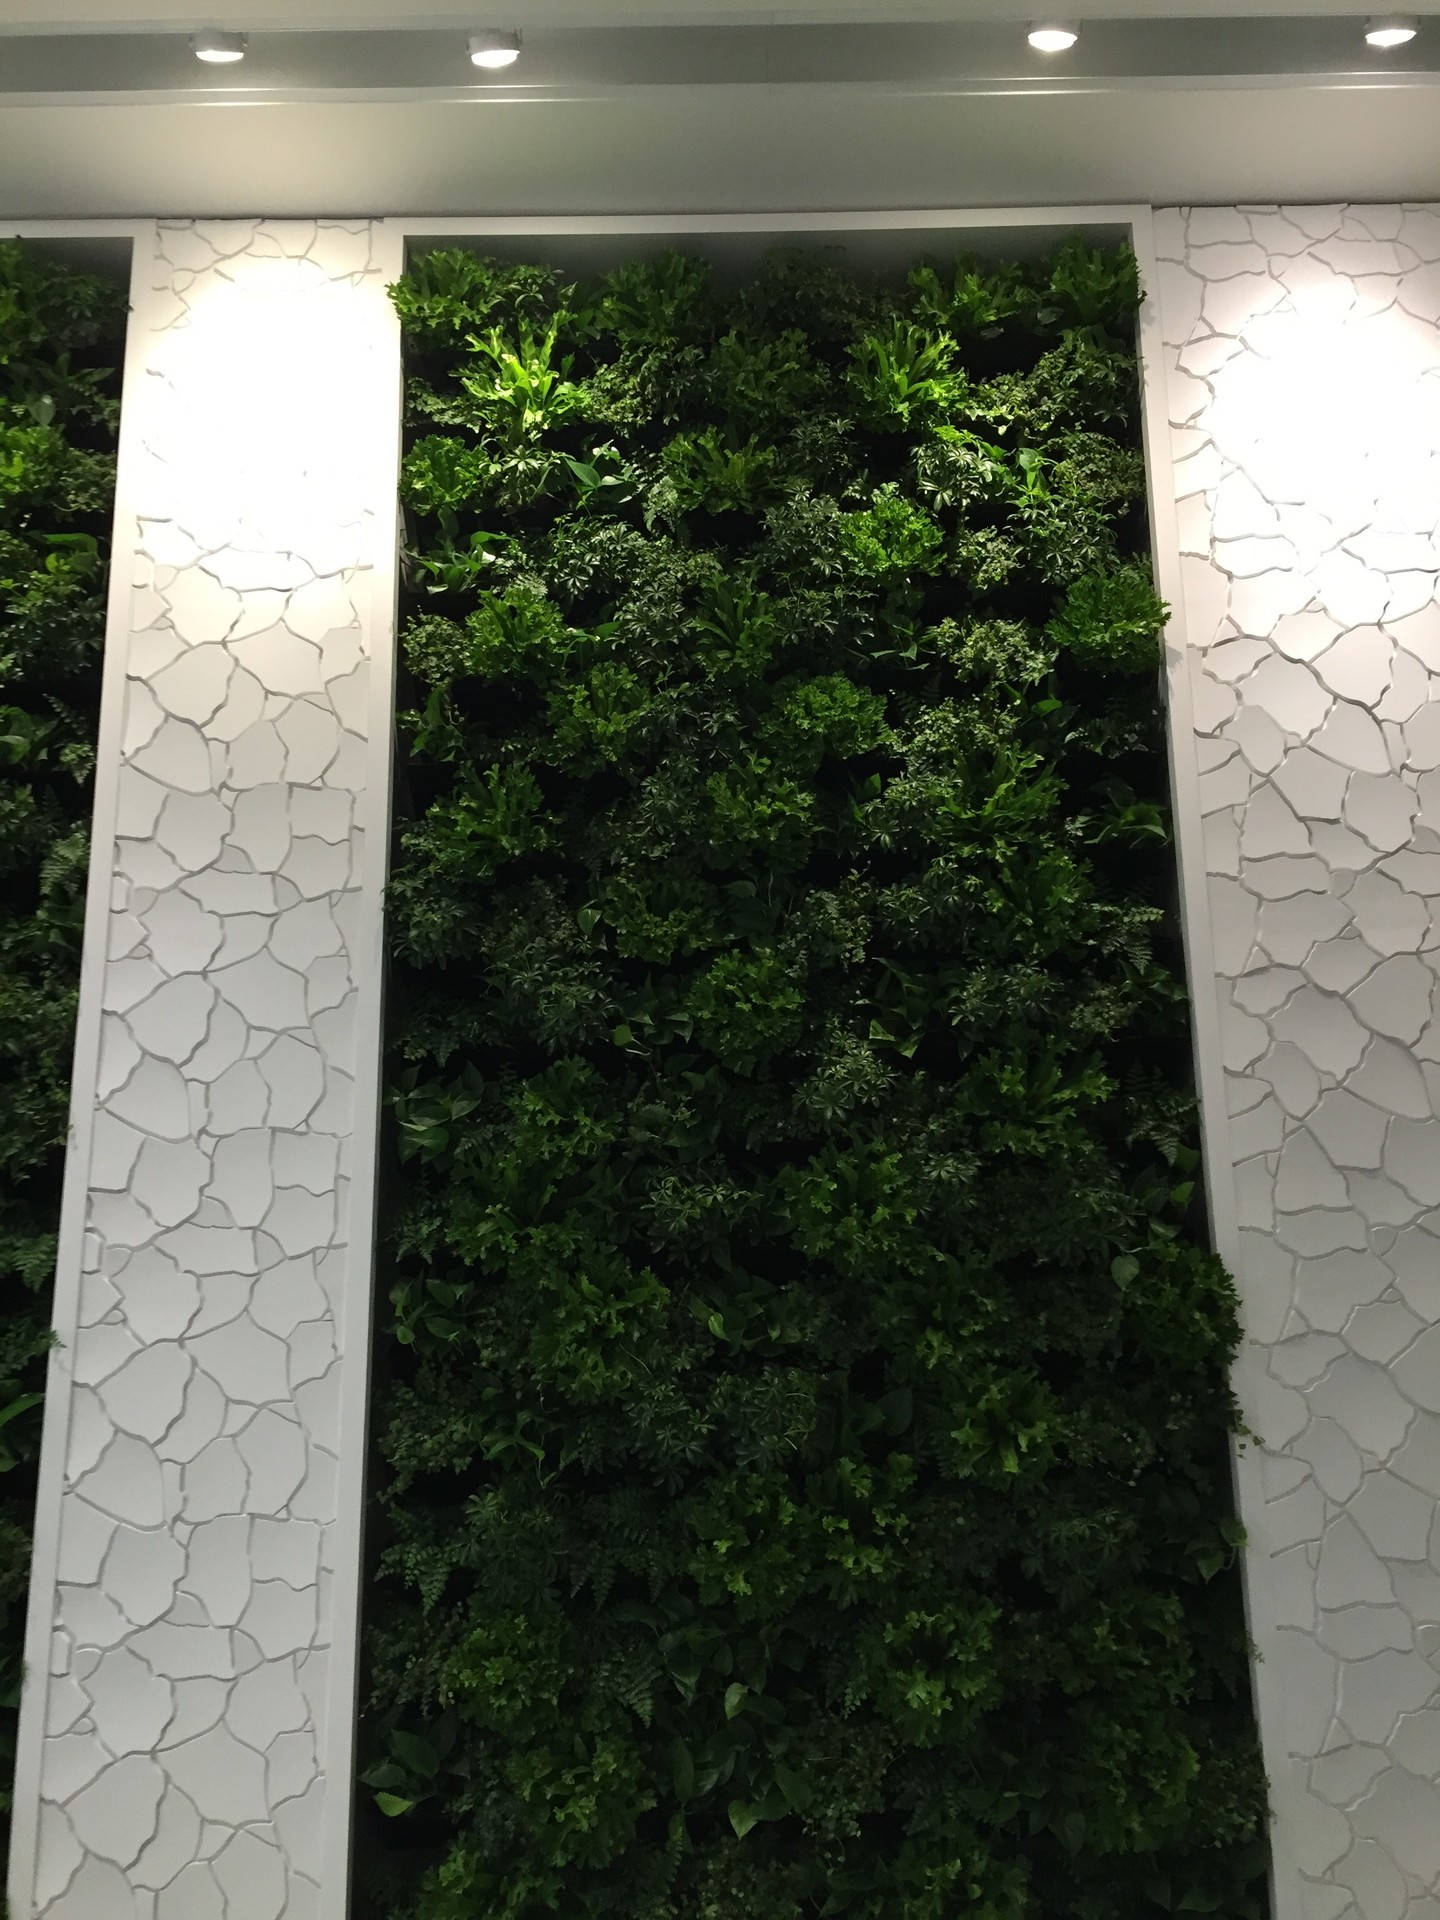 Planted walls, by Natura can make a building more energy-efficient by providing a shield from strong summer sunlight and provide protective insulation during the winter months.